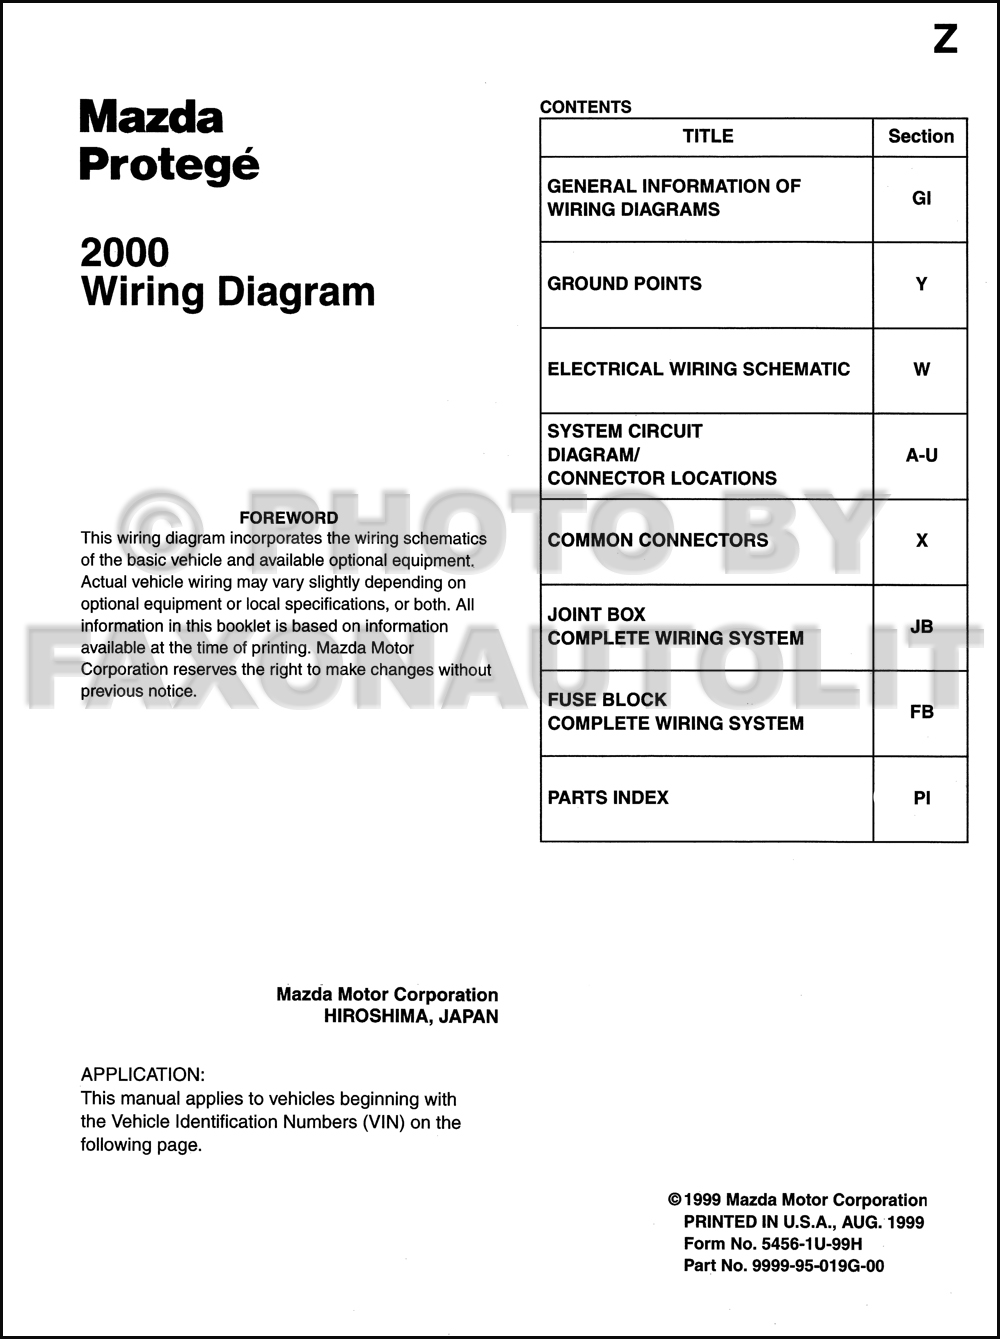 2000 mazda protege wiring diagram starting know about wiring diagram \u2022 2000 mazda stereo wiring diagram 2000 mazda protege wiring diagram manual original rh faxonautoliterature com 2000 mazda protege radio wiring diagram